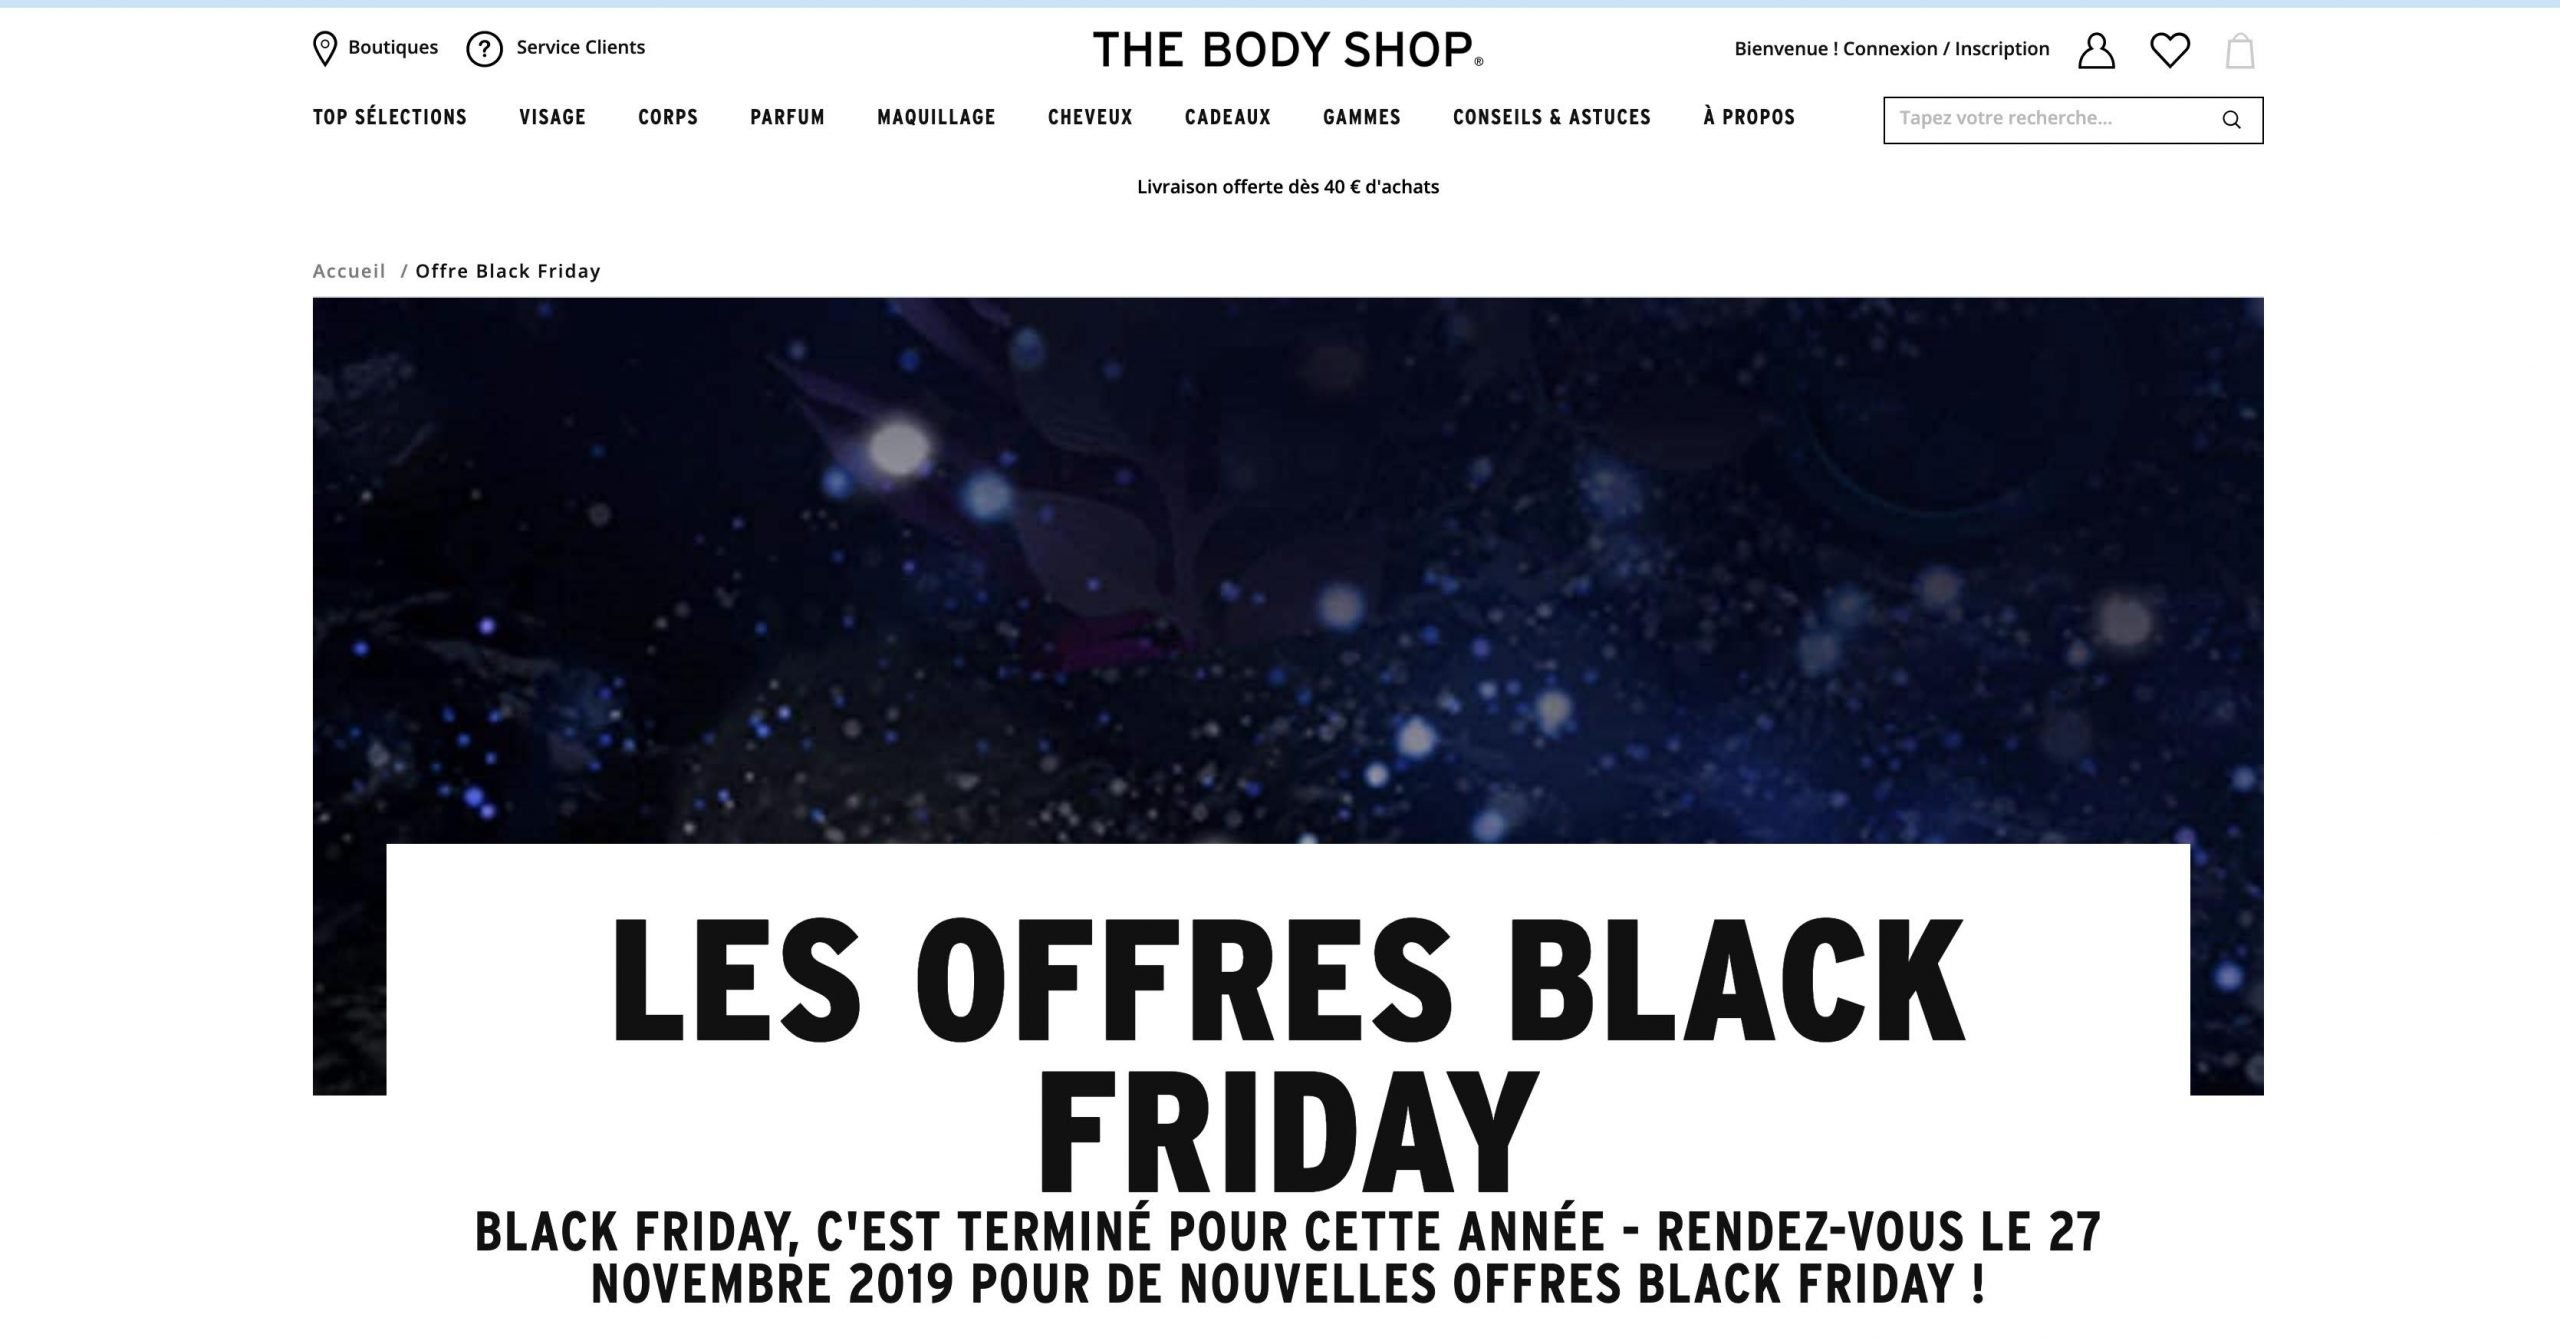 black-friday-the-body-shop-2019